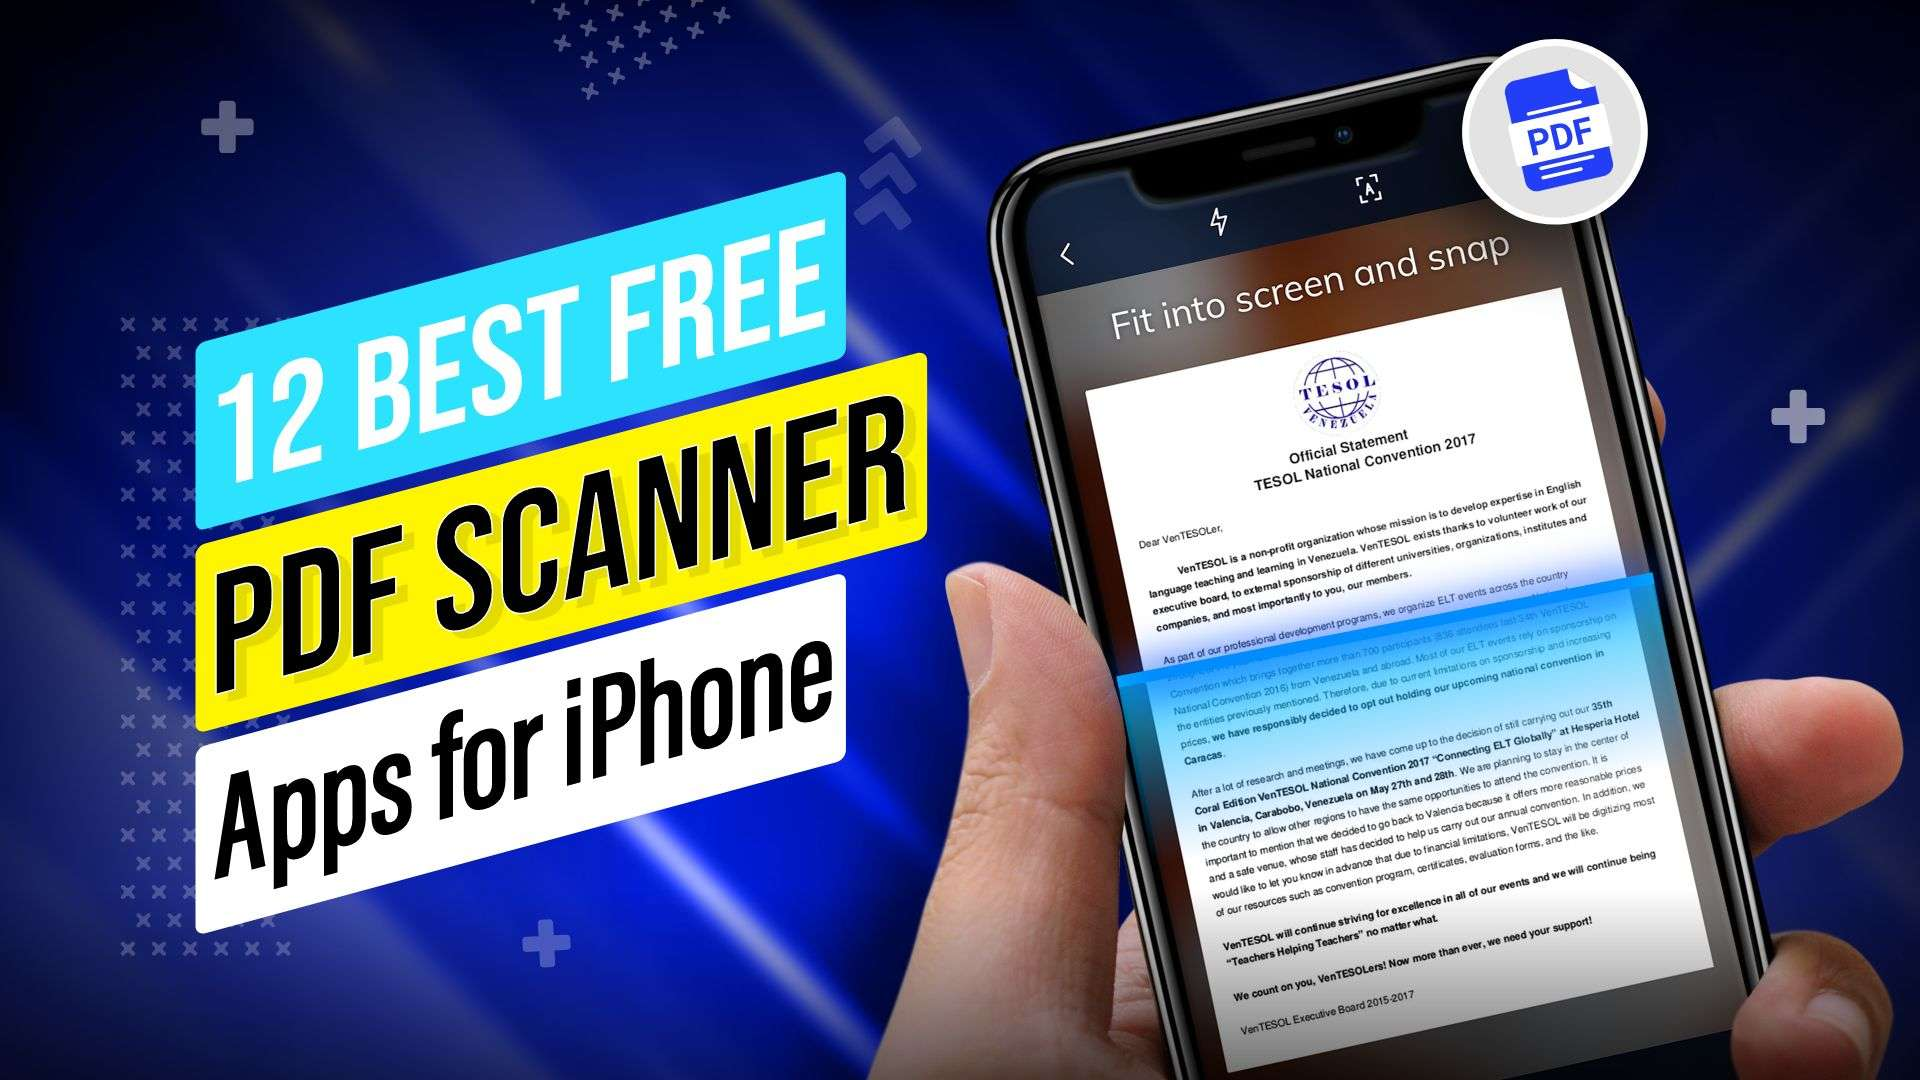 12 Best Free PDF Scanner Apps for iPhone